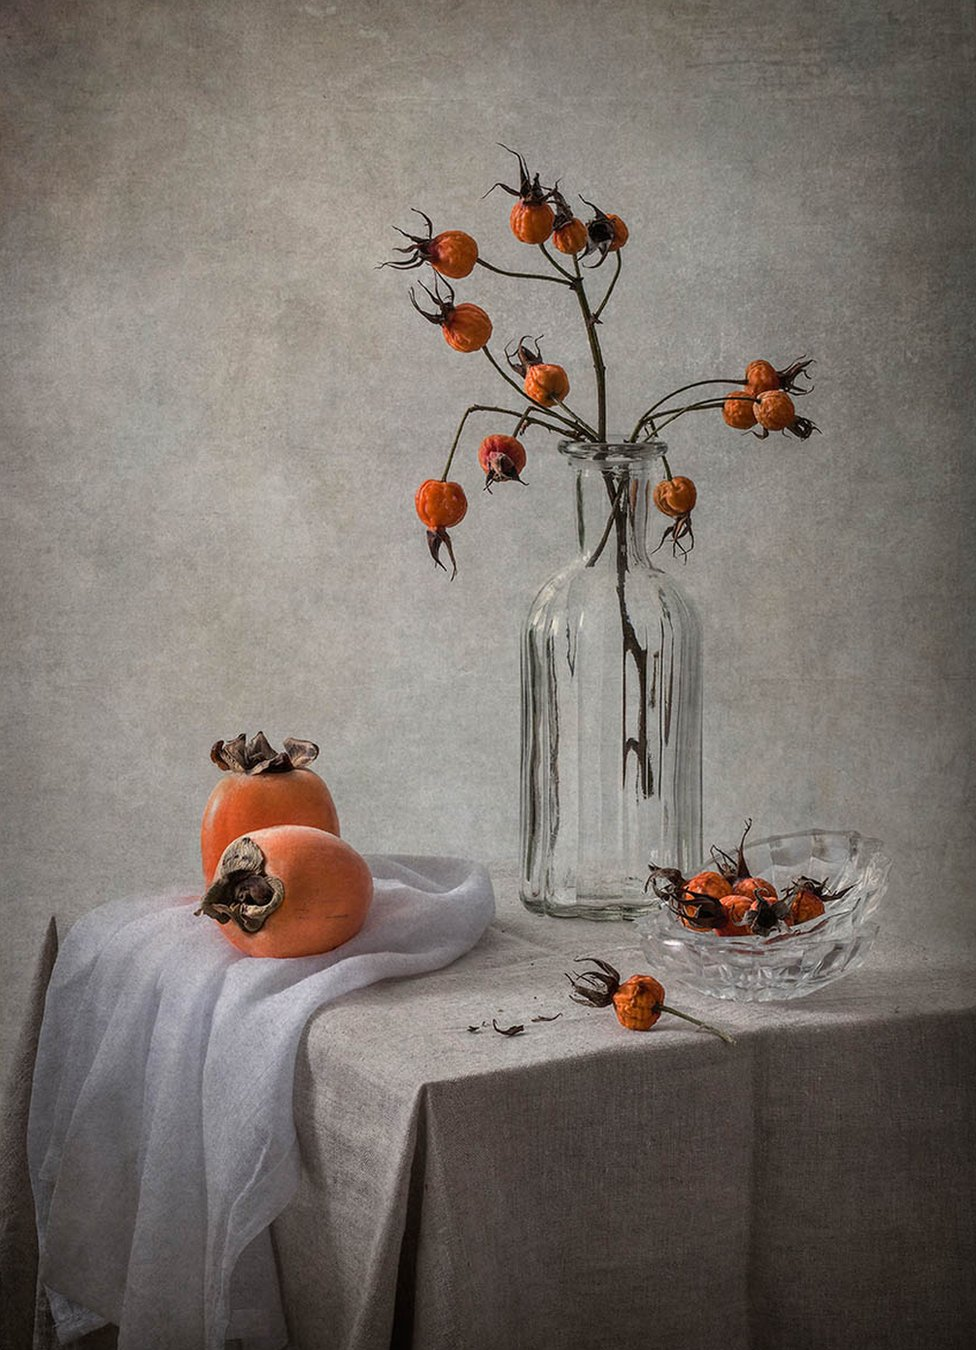 Rose hips in a glass vase with ripe persimmon fruits on table with a grey tablecloth